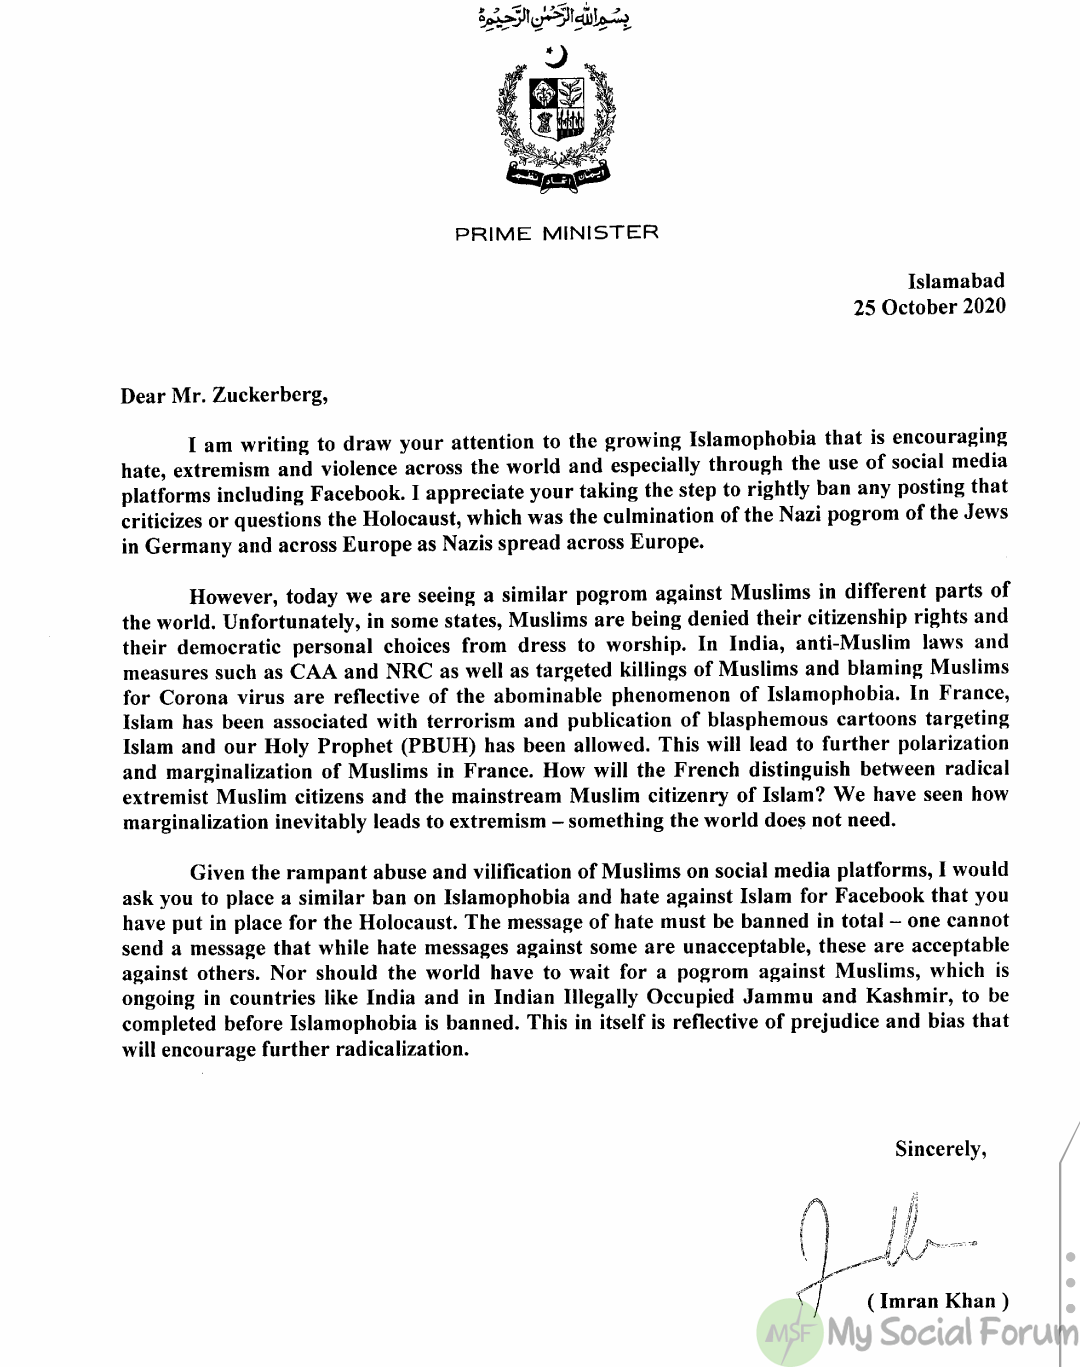 PM letter to facebook